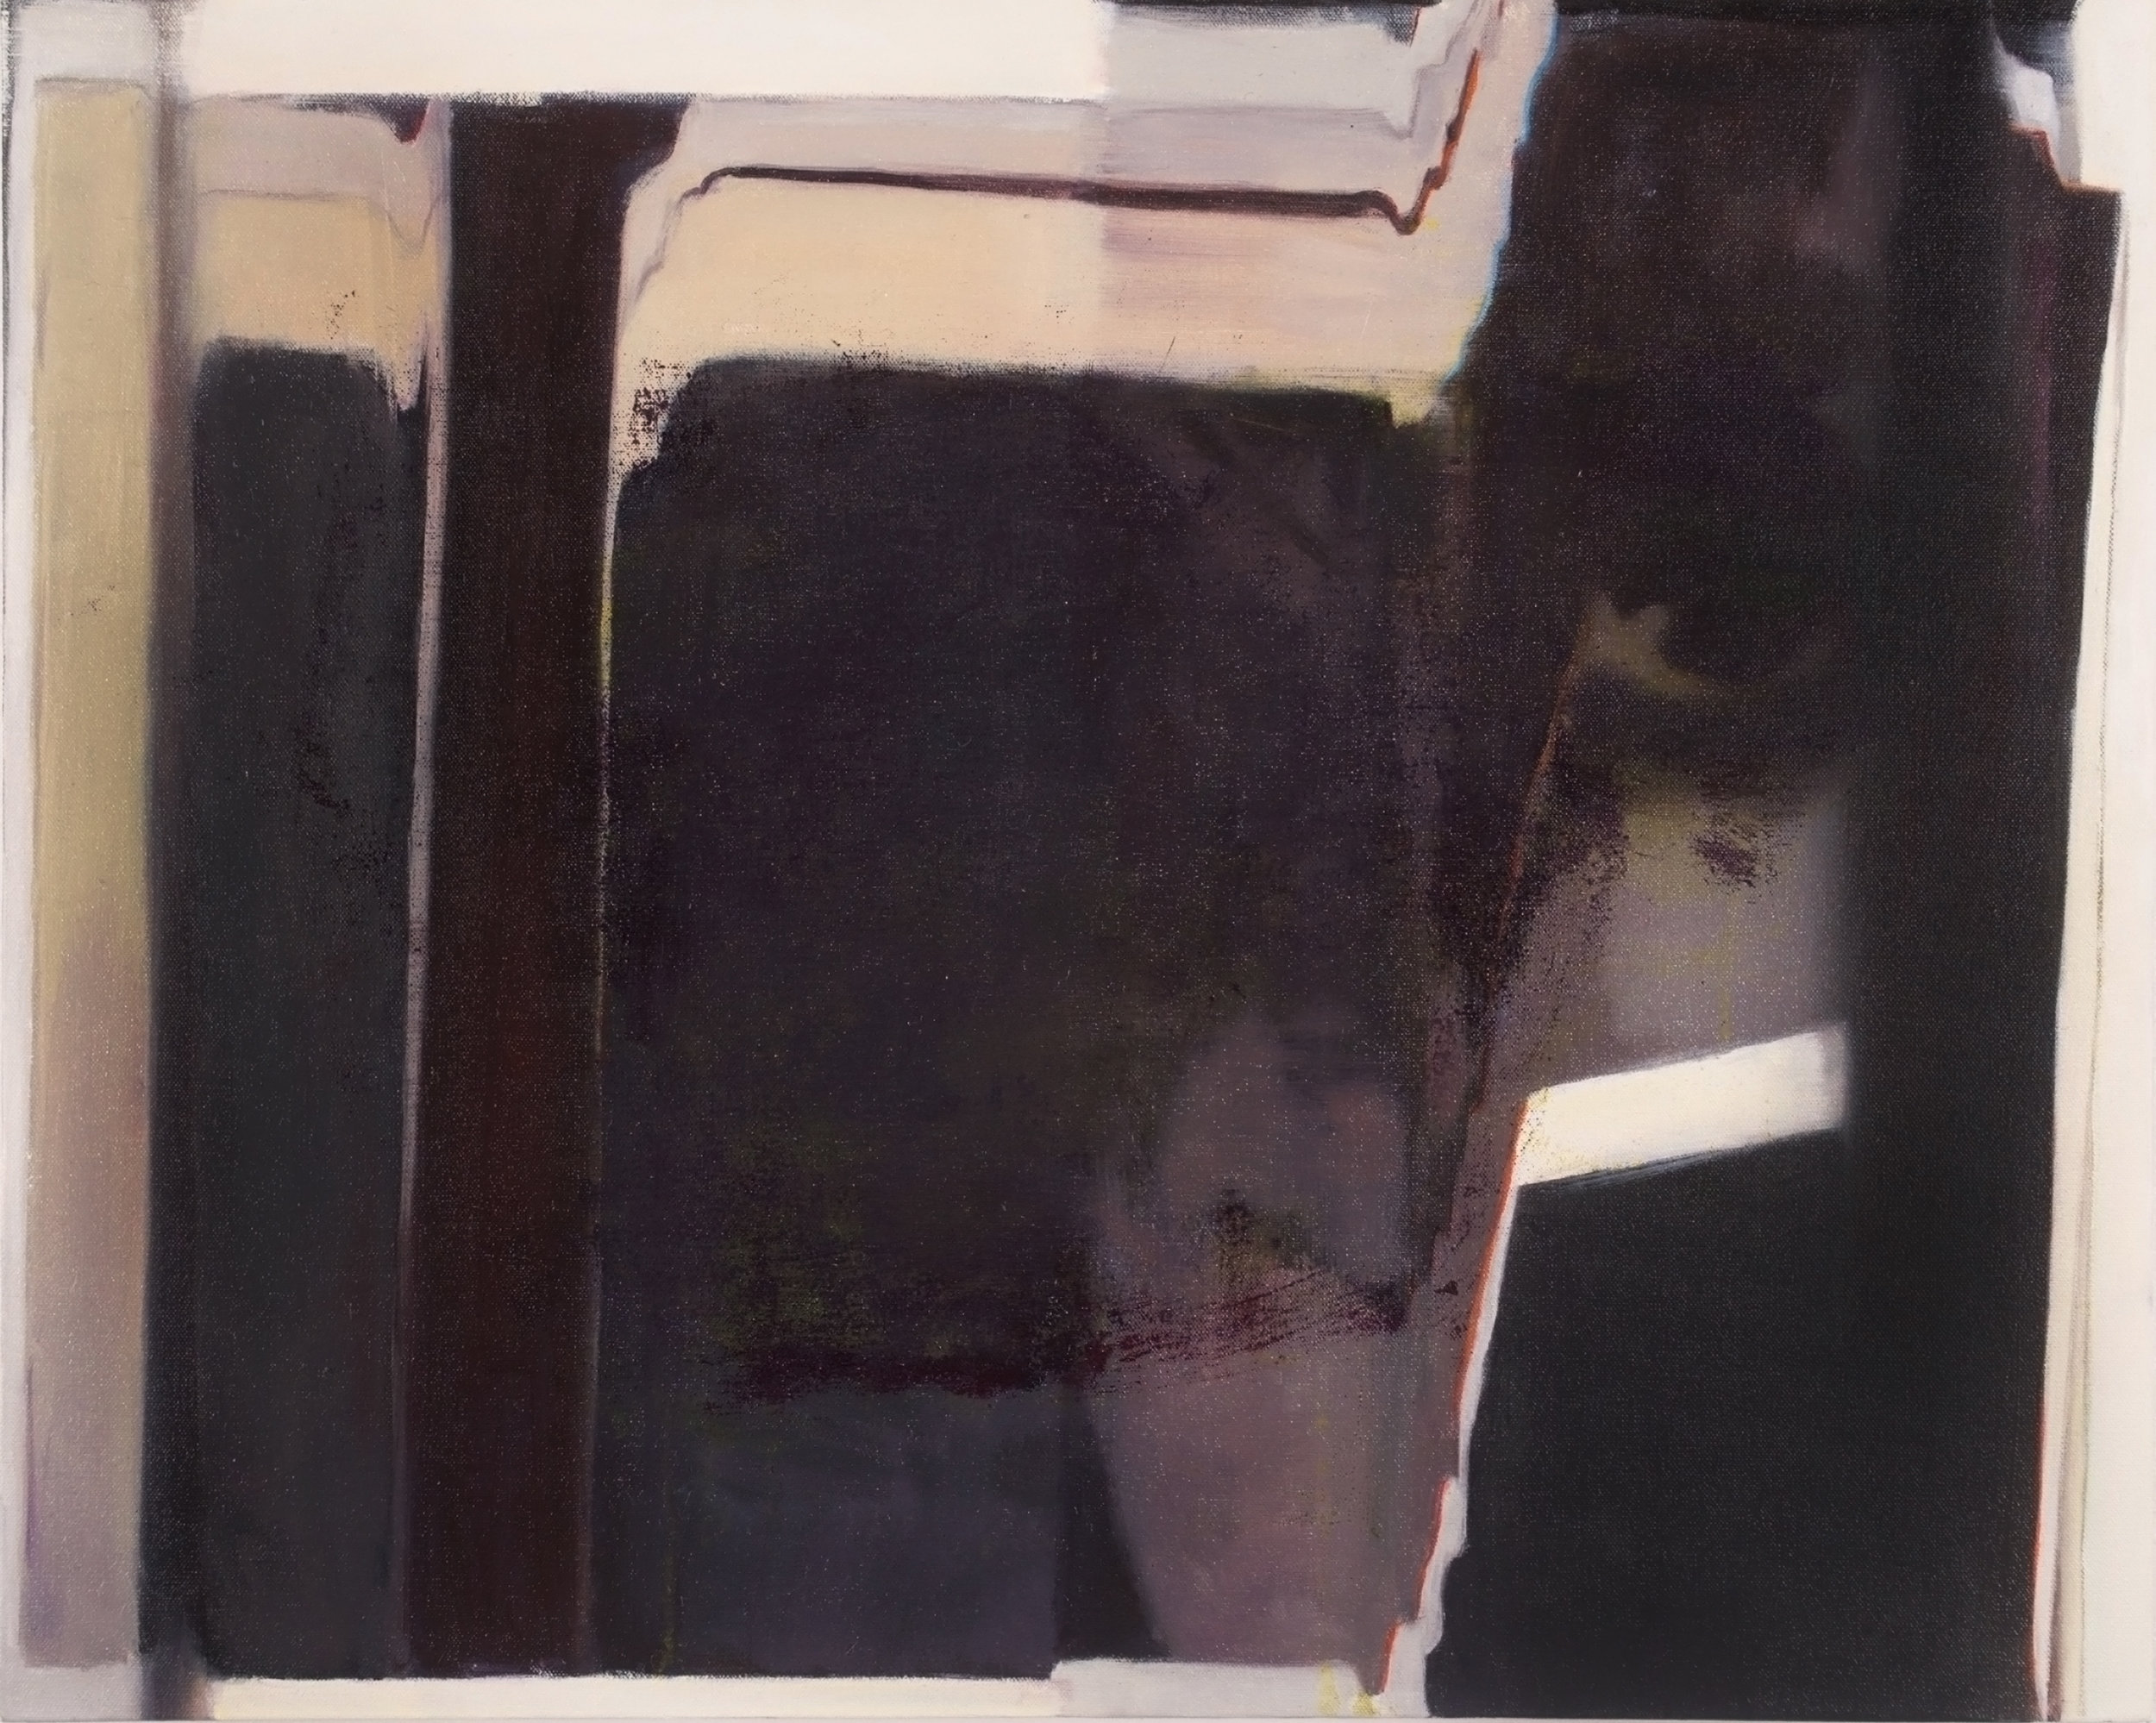 Negation #3, 2015  Oil on canvas  24 x 30 inches